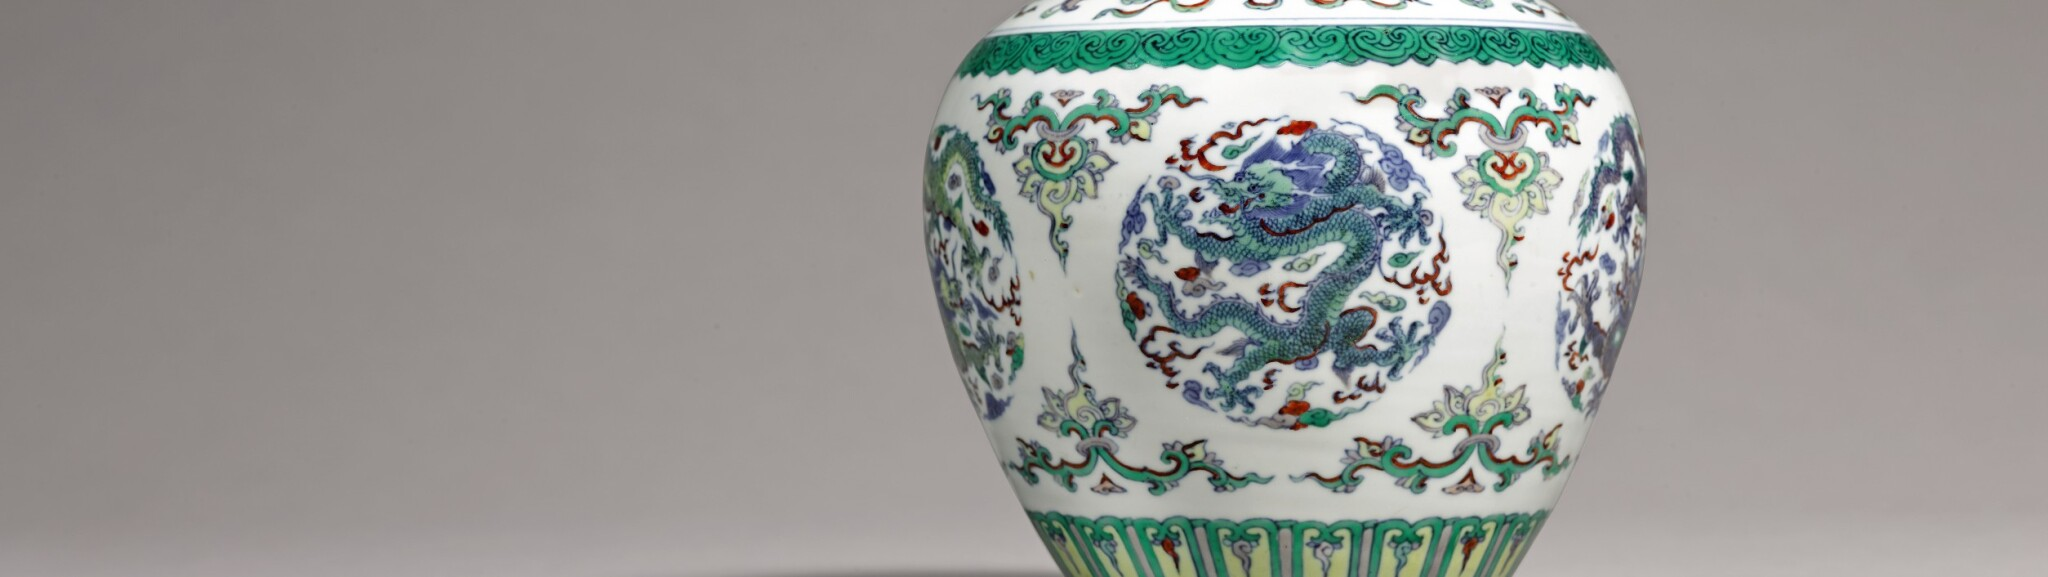 Imperial Porcelain – A Private Collection